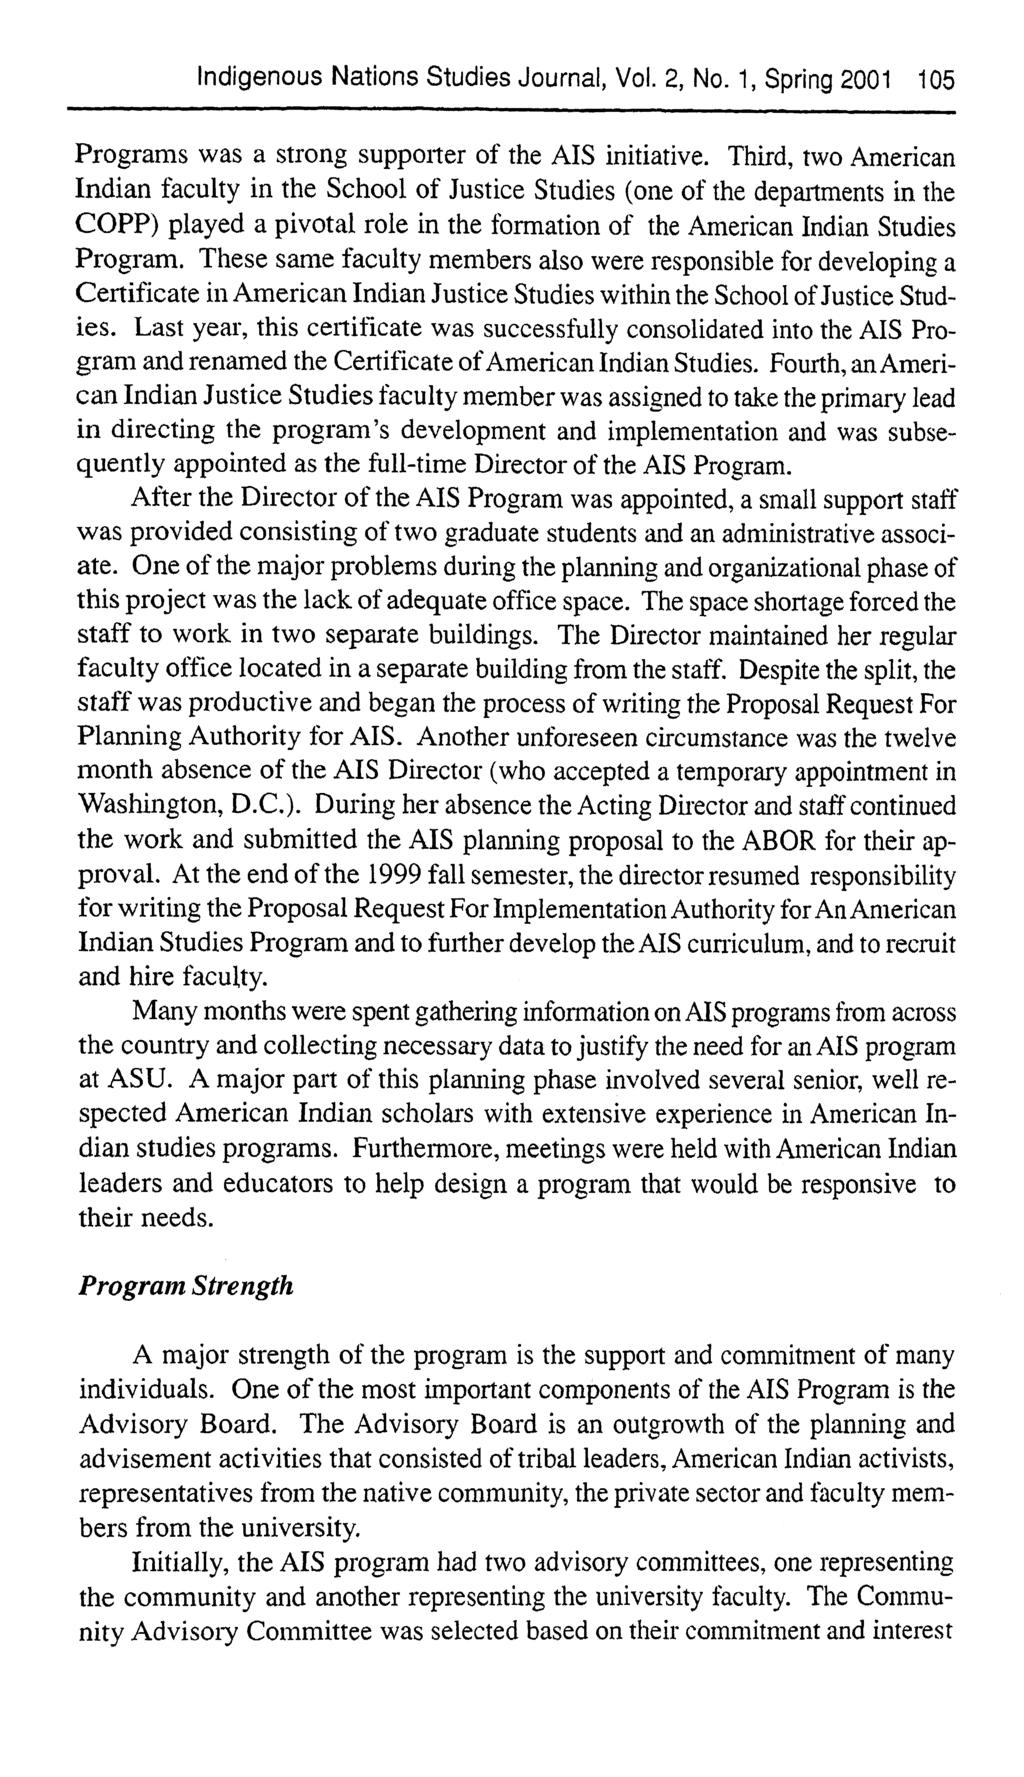 Indigenous Nations Studies Journal, Vol. 2, No. 1, Spring 2001 105 Programs was a strong supporter of the AIS initiative.